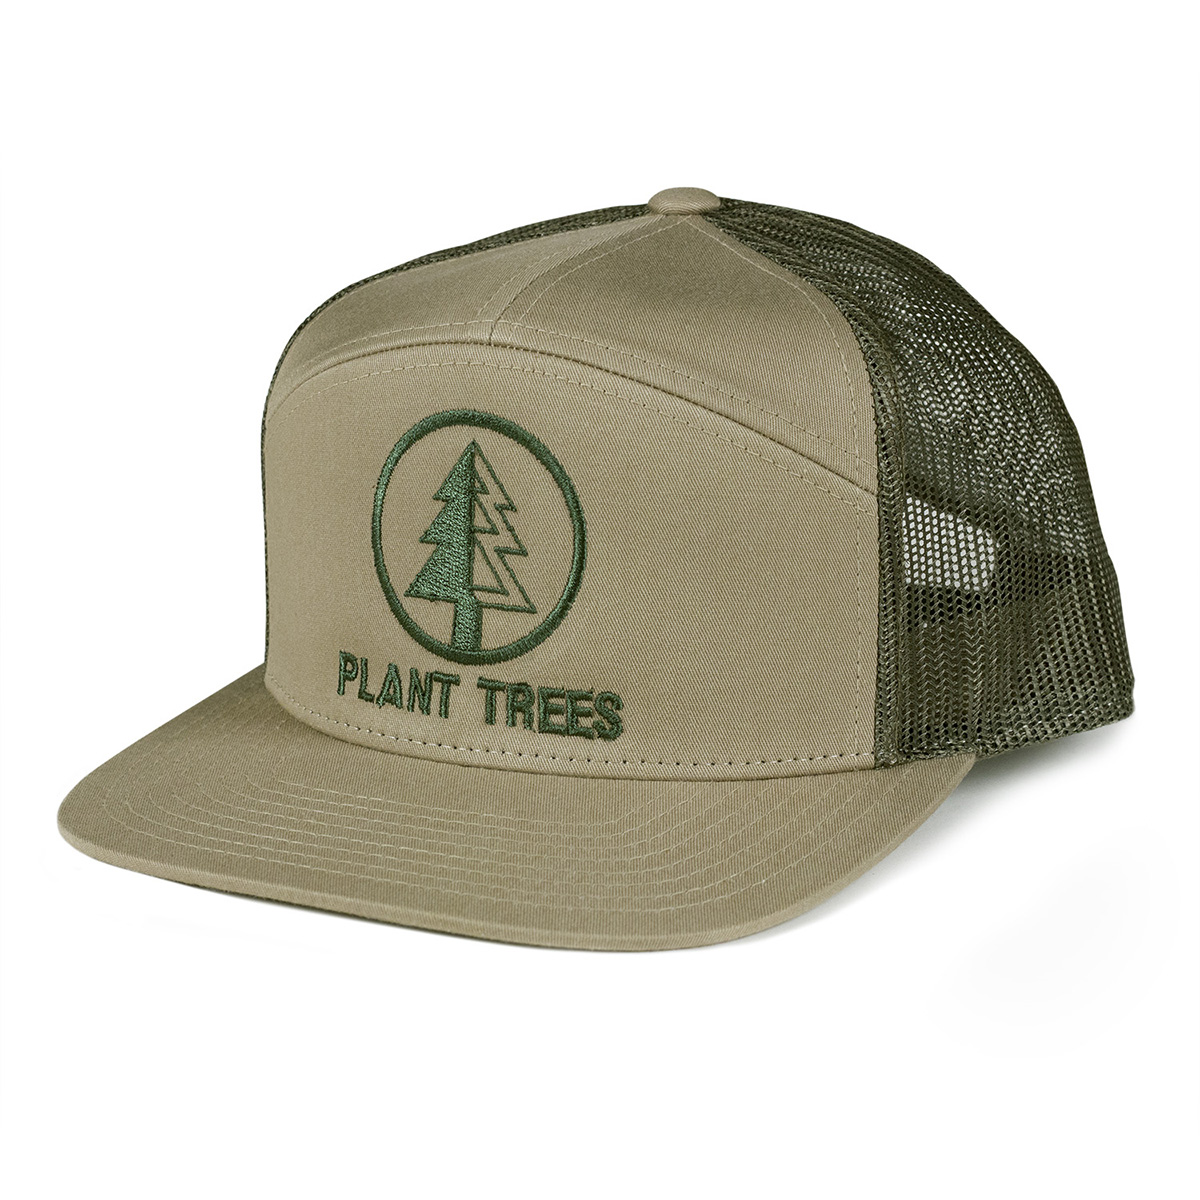 embroidery-plant-trees-hat.jpg